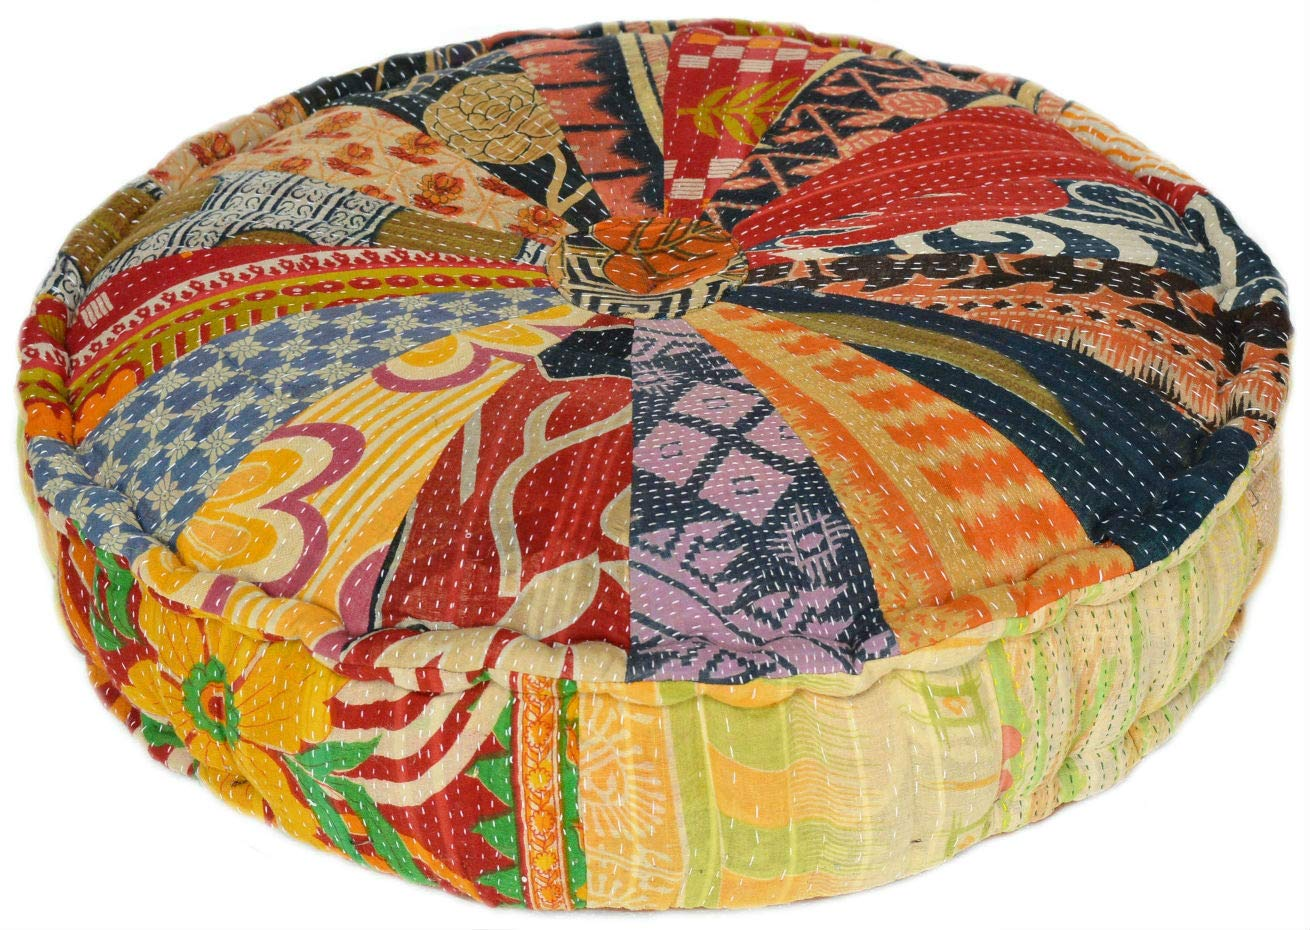 MARUDHARA RANGILA Stuffed Indian Vintage Kantha Pizza Patch Floor Cushion; Pouf Ottoman; Round Pouf 5937220